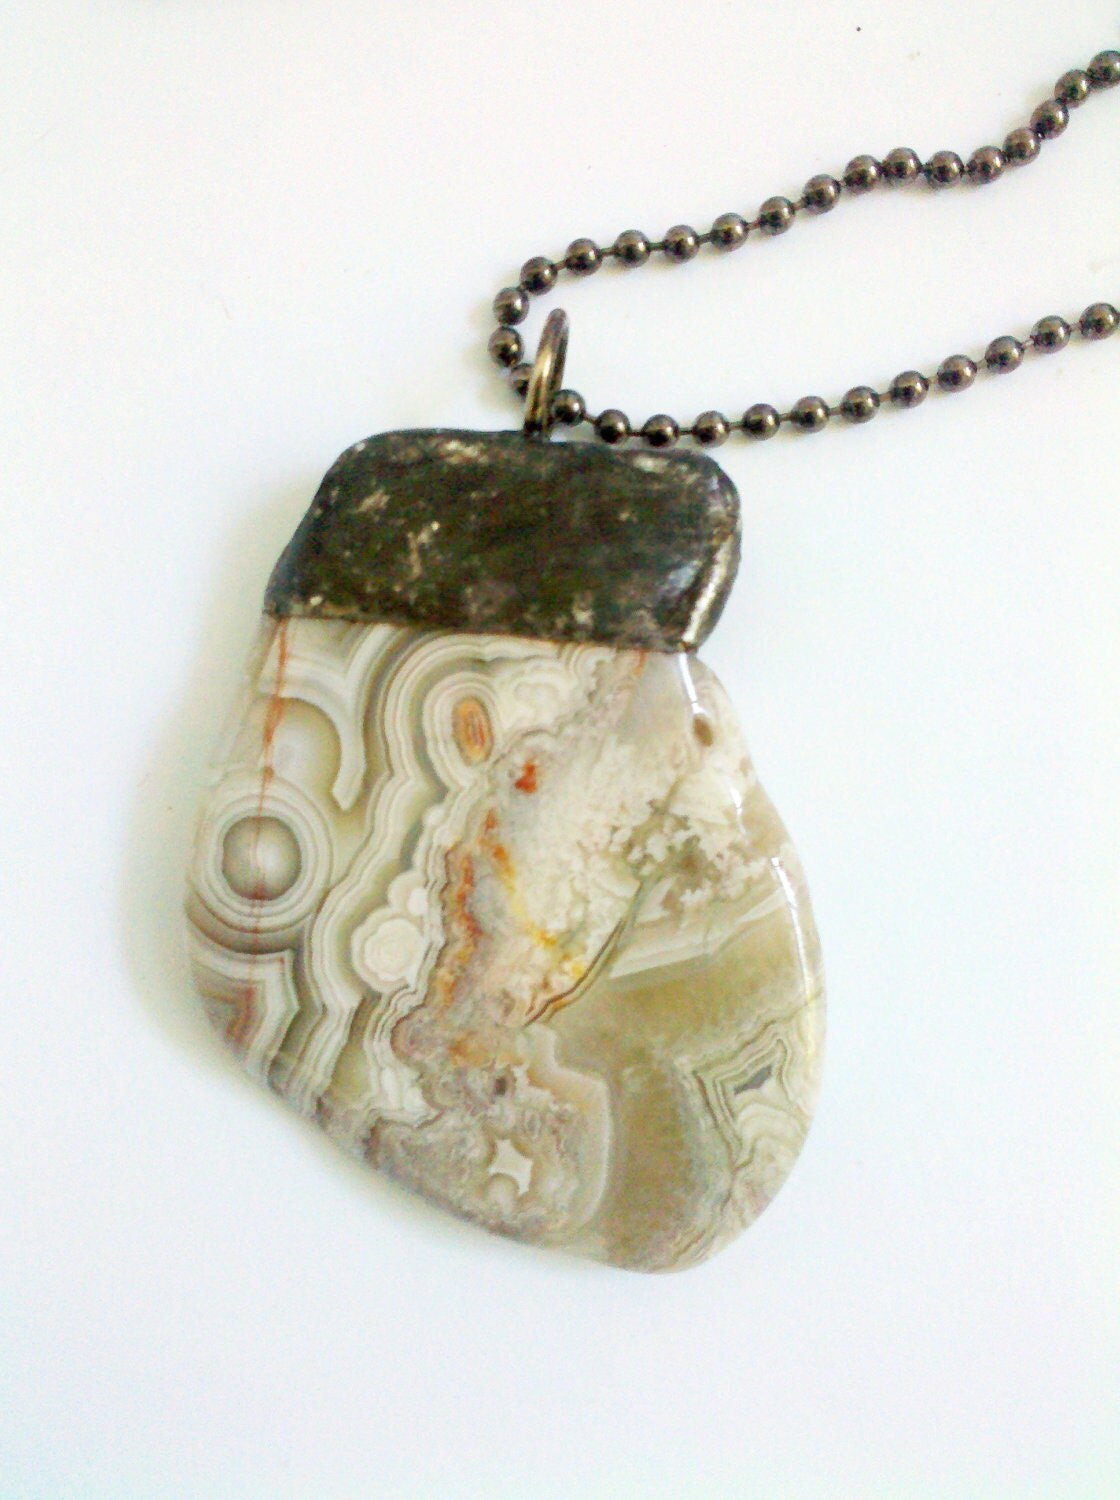 Crazy Lace Agate Crystal Healing Necklace Wiccan Talisman Celtic Charm Agate Pendant Necklace - Laughter Stone - Mystarrrs